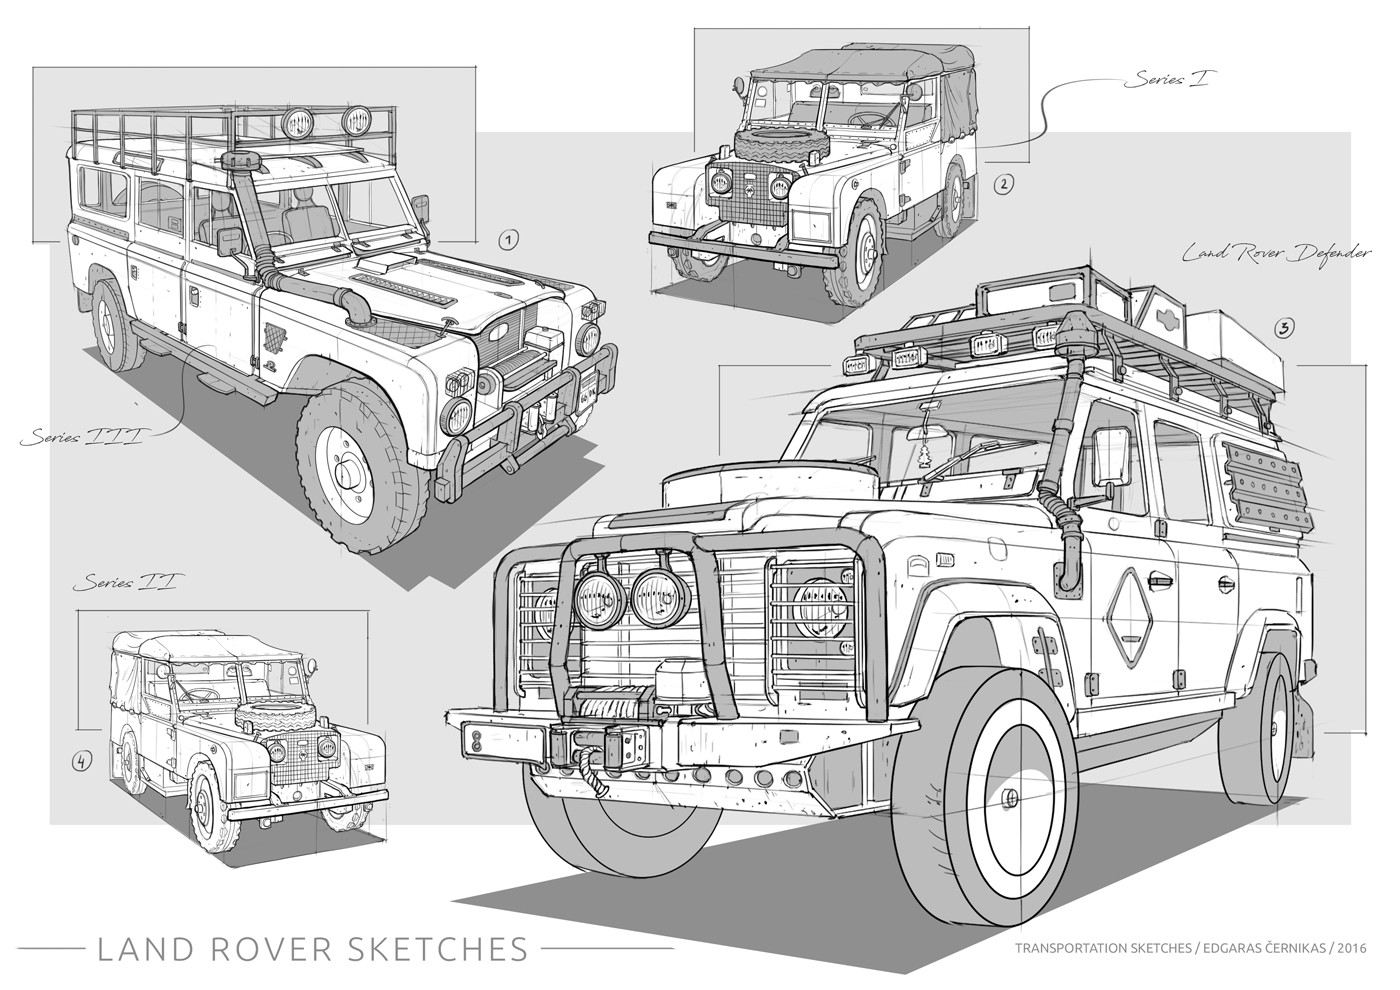 Edgaras cernikas transportation sketches land rover 1400x990